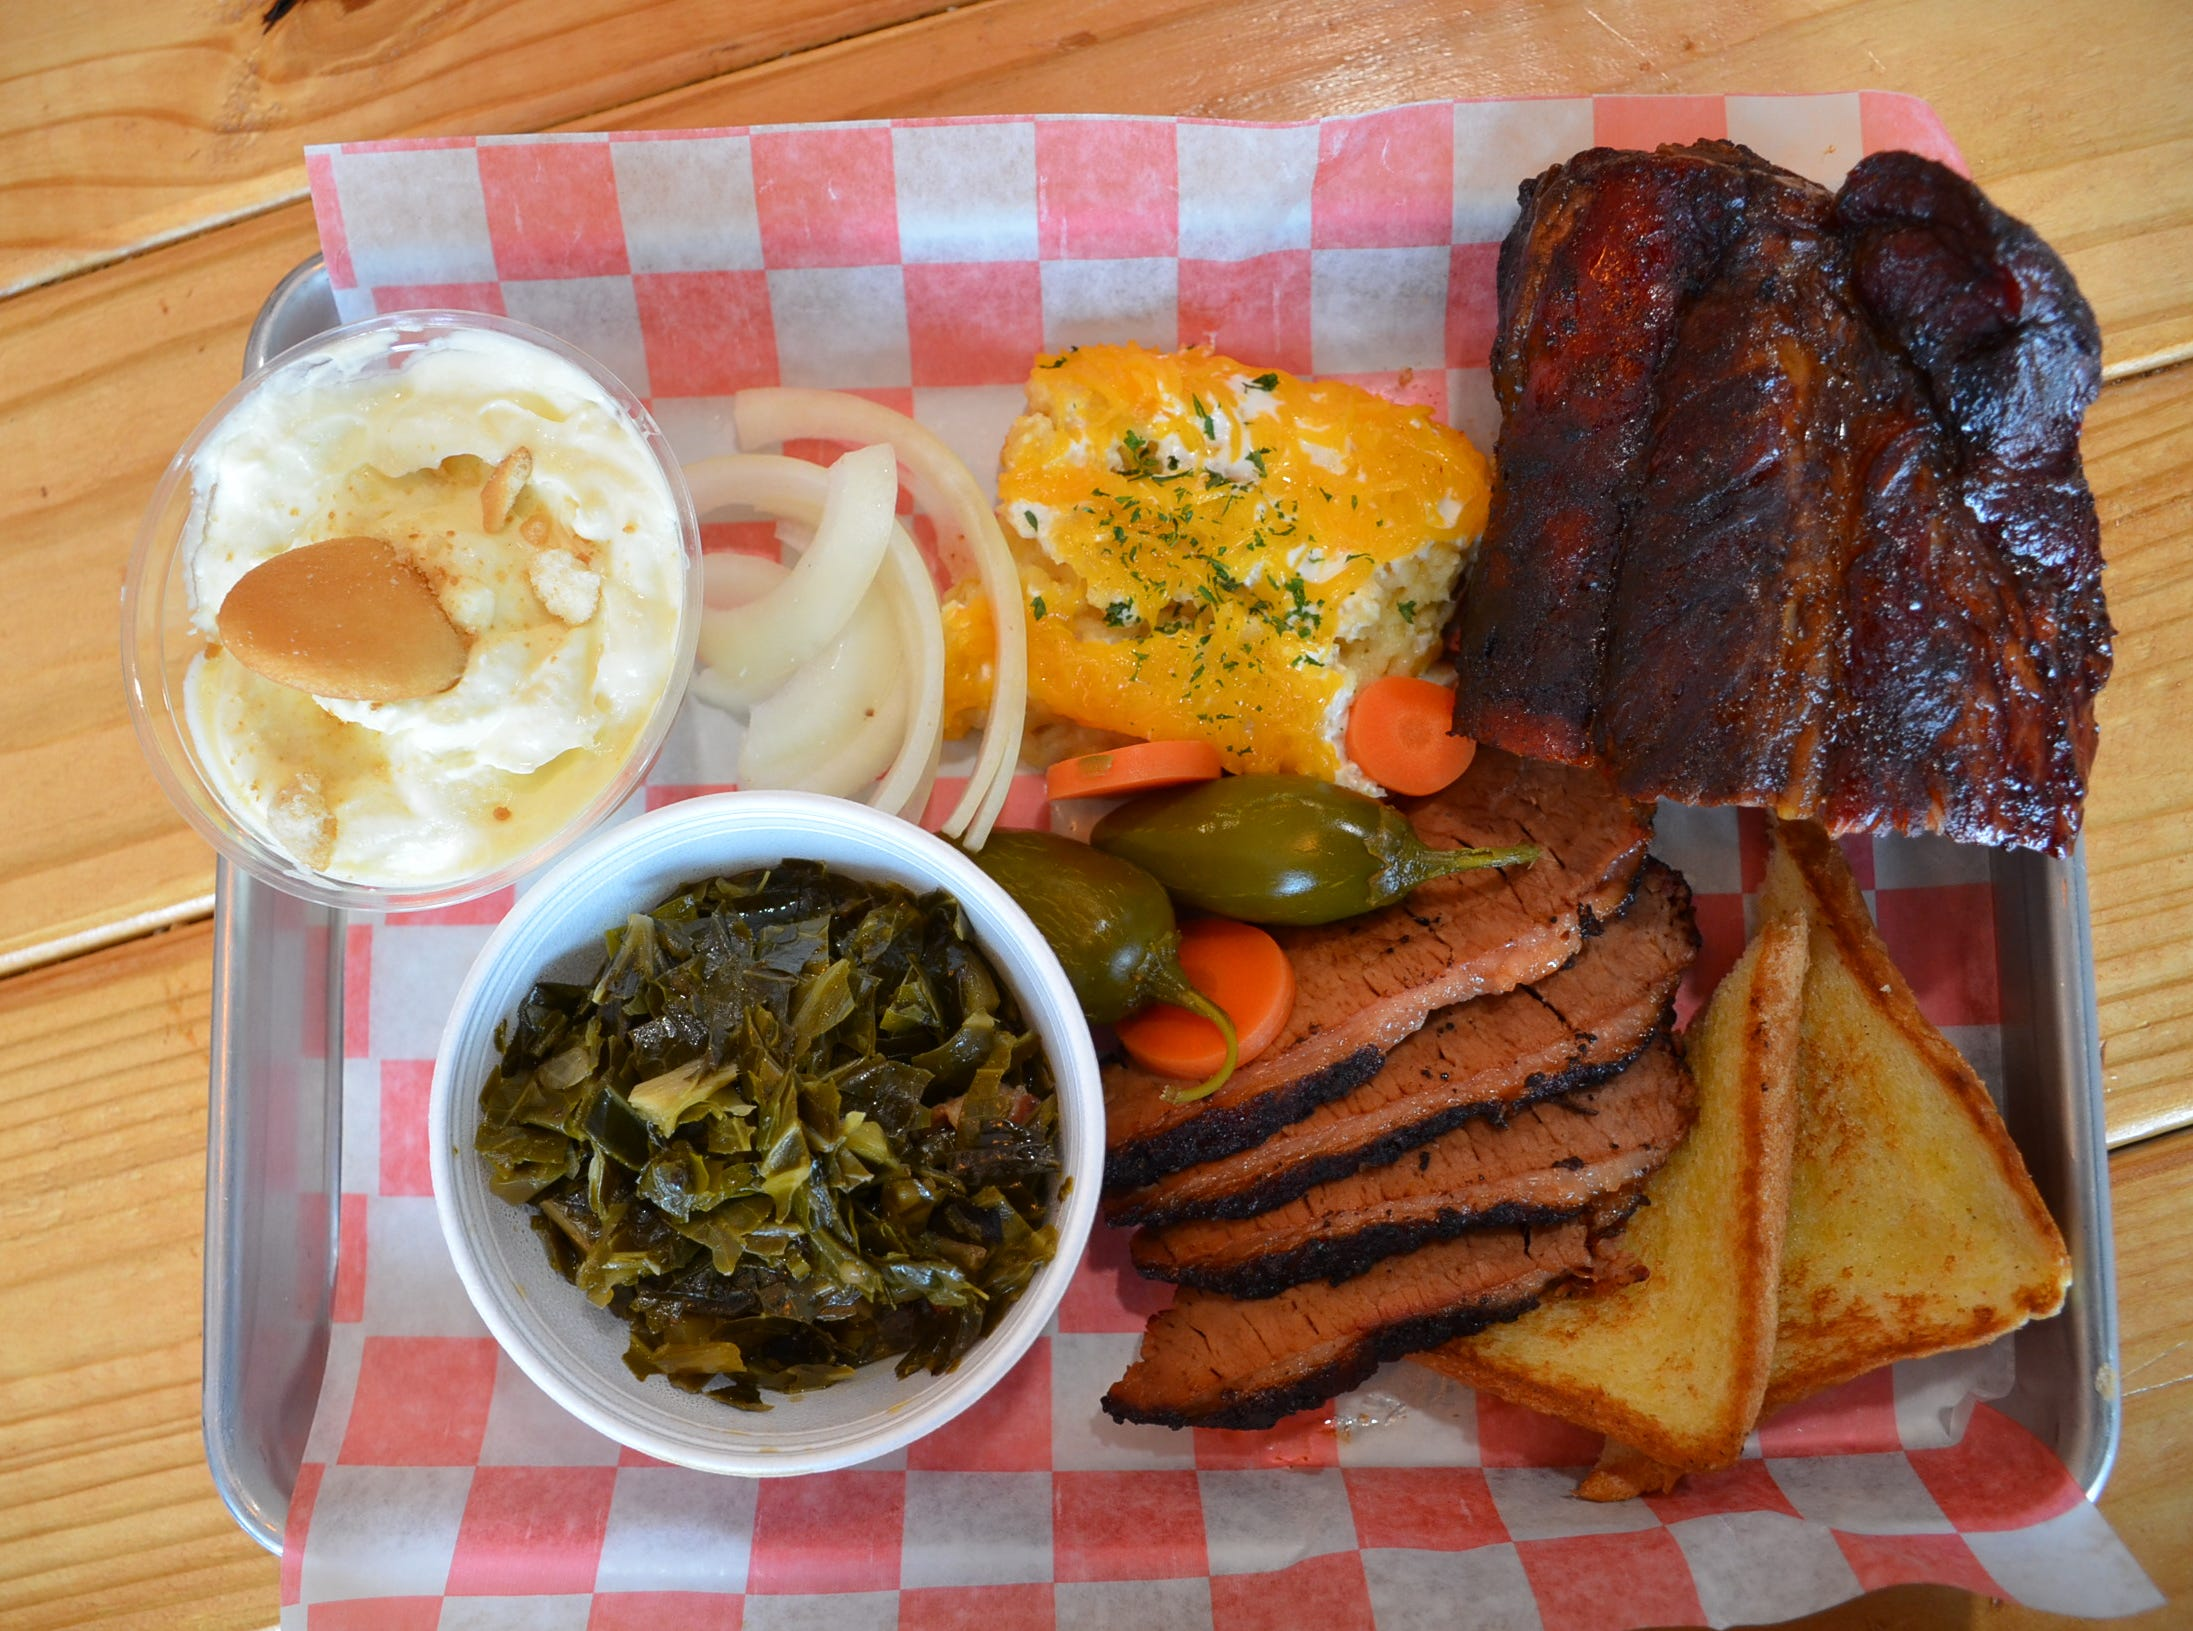 The Texas Two Step choice of two meats and two sides is a popular menu item at The Meat Sweats BBQ in Hendersonville, which also has banana pudding.